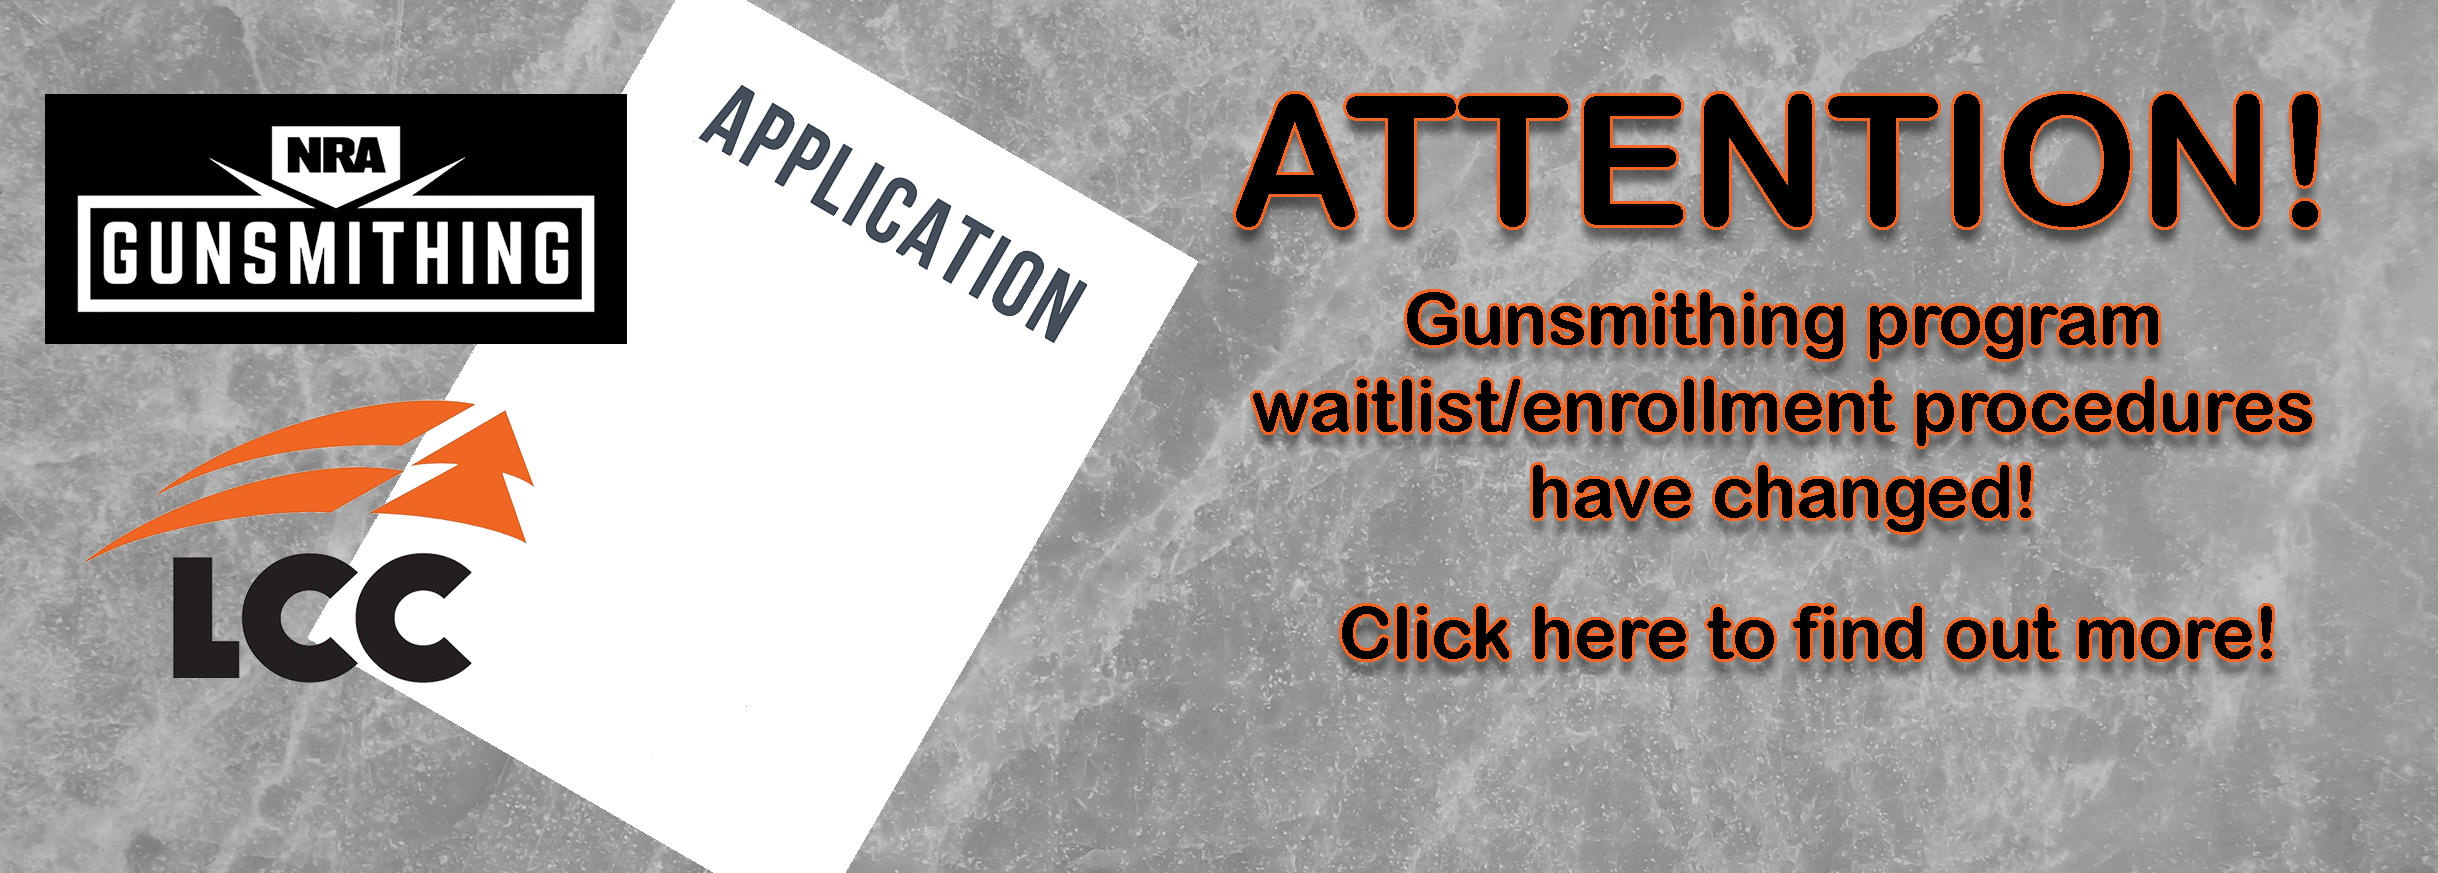 Gunsmithing Application Change